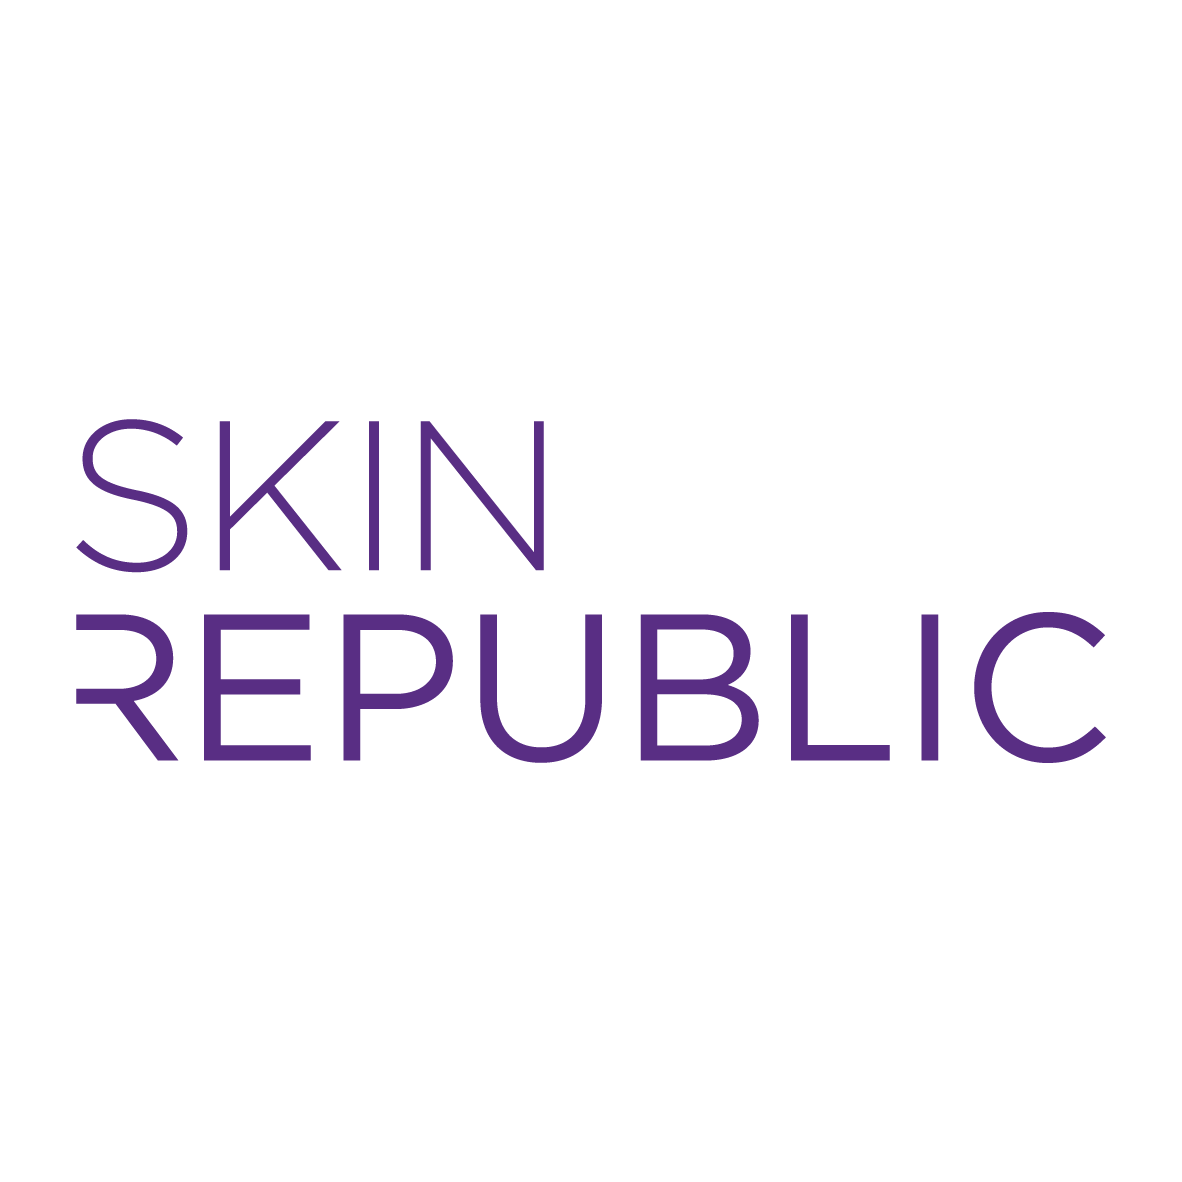 skin-republic-logo-for-social-media-profile-picture-01